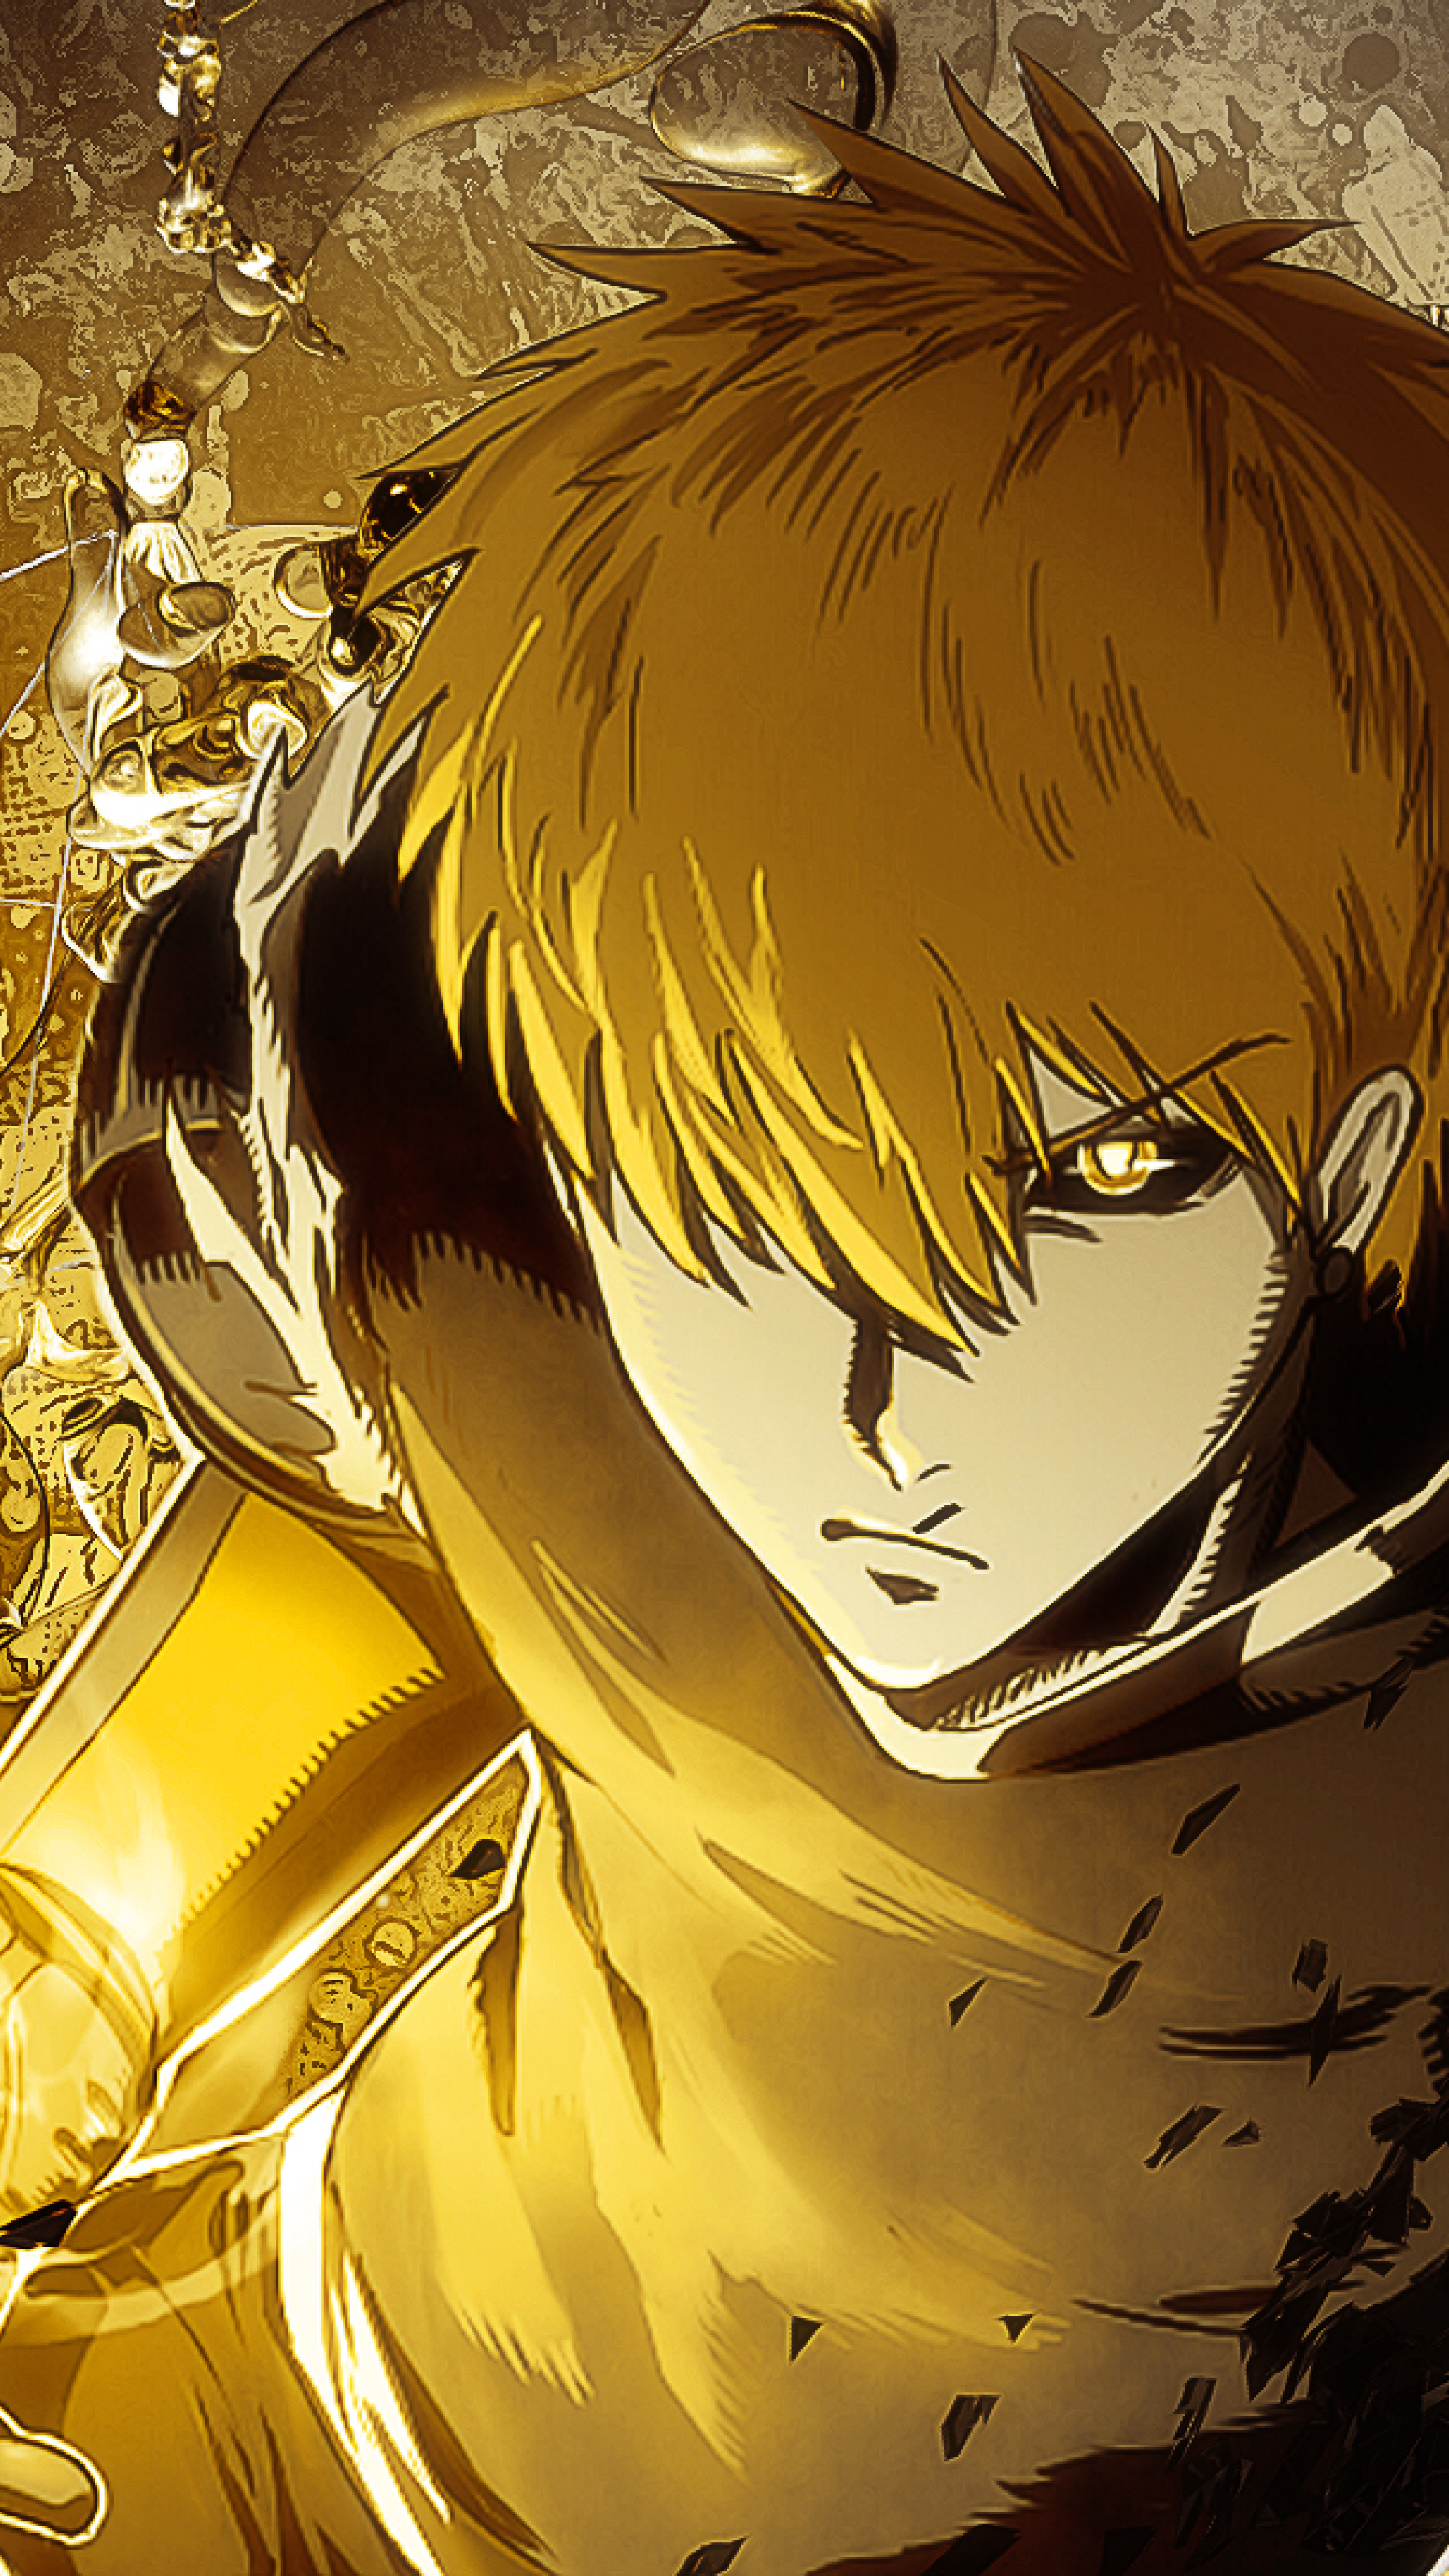 Popular Wallpaper Android One Punch Man - one-punch-man-genos_60643_2160x3840  You Should Have_45499      .jpg